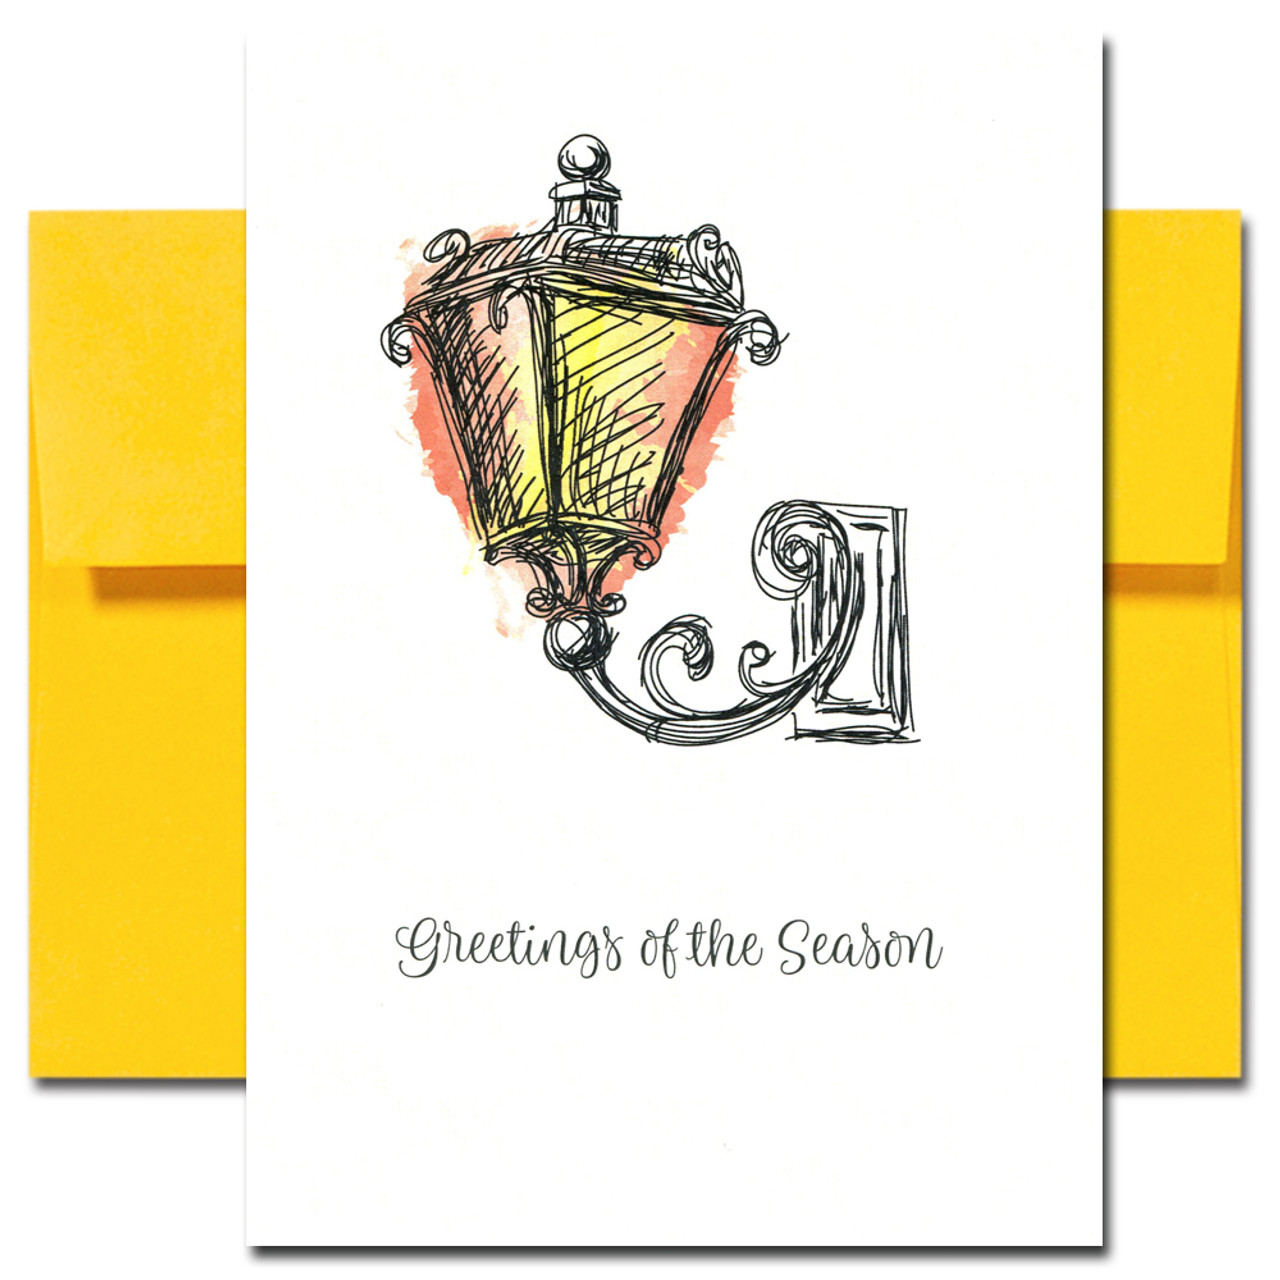 Lamplight Holiday Card has a hand-drawn illustration of a vintage lamp and the words Greetings of the Season